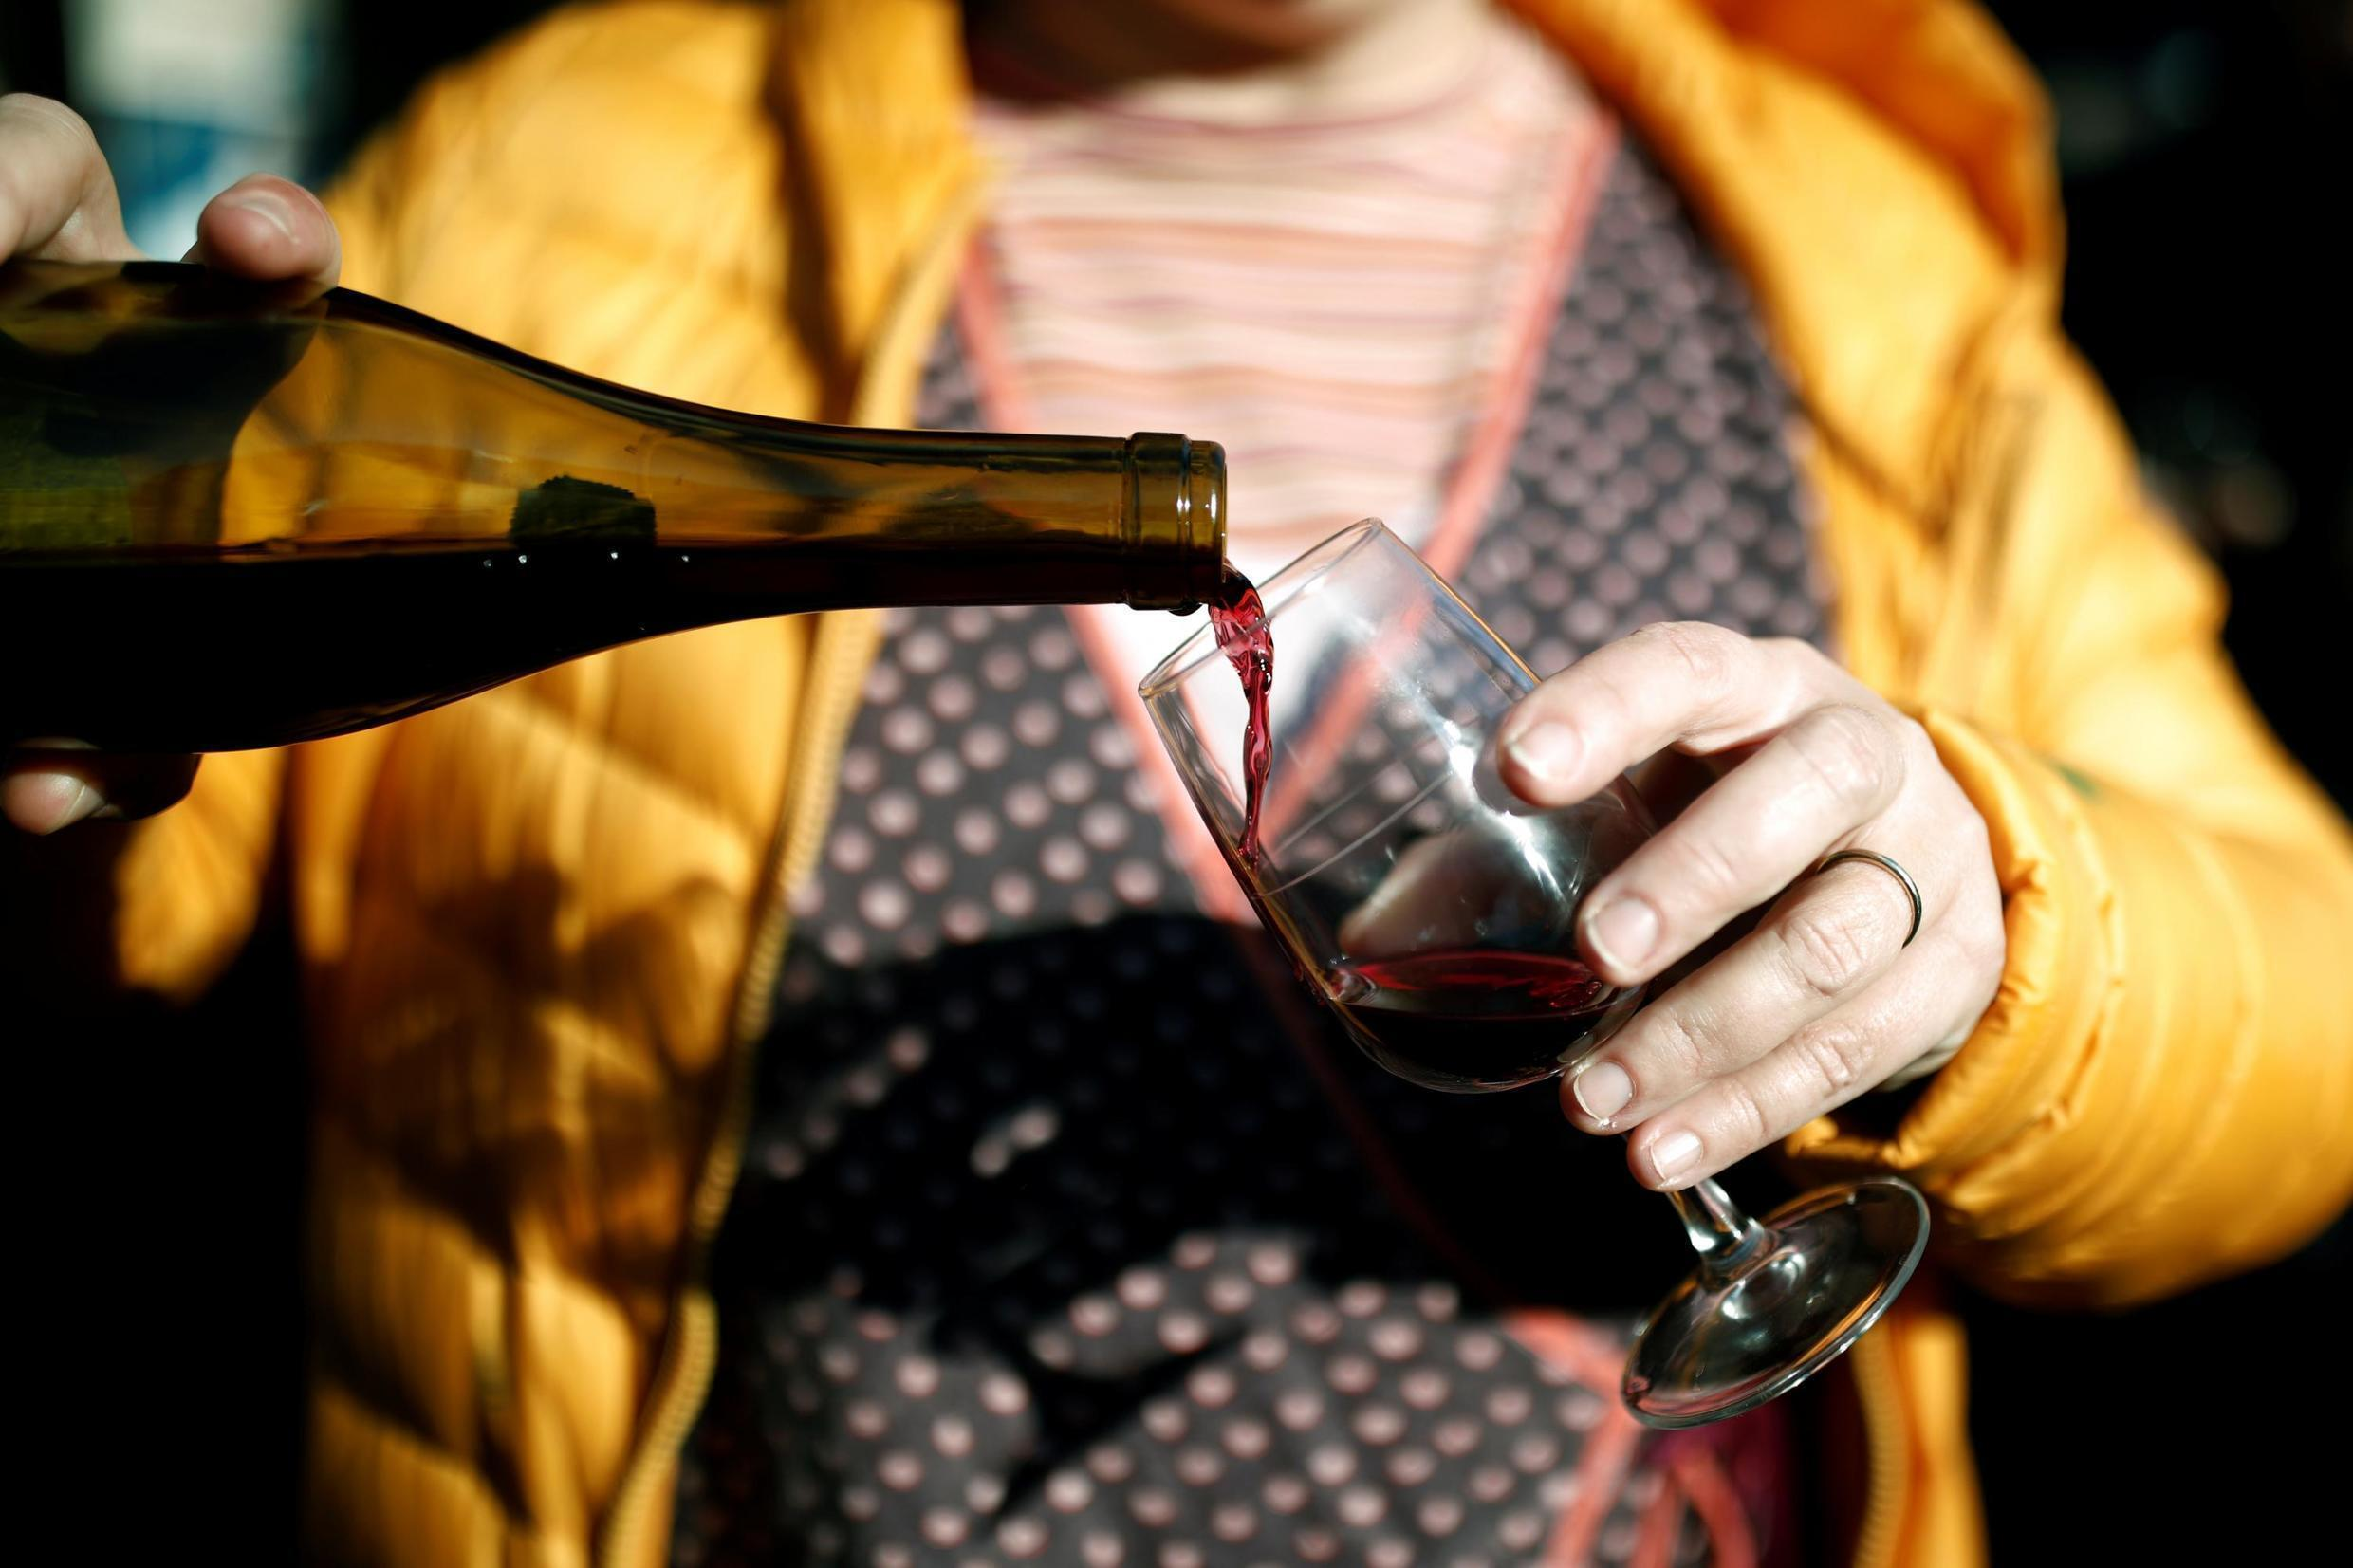 A woman pours a glass of Beaujolais Nouveau wine in a bistrot in Paris, France, November 21, 2019.